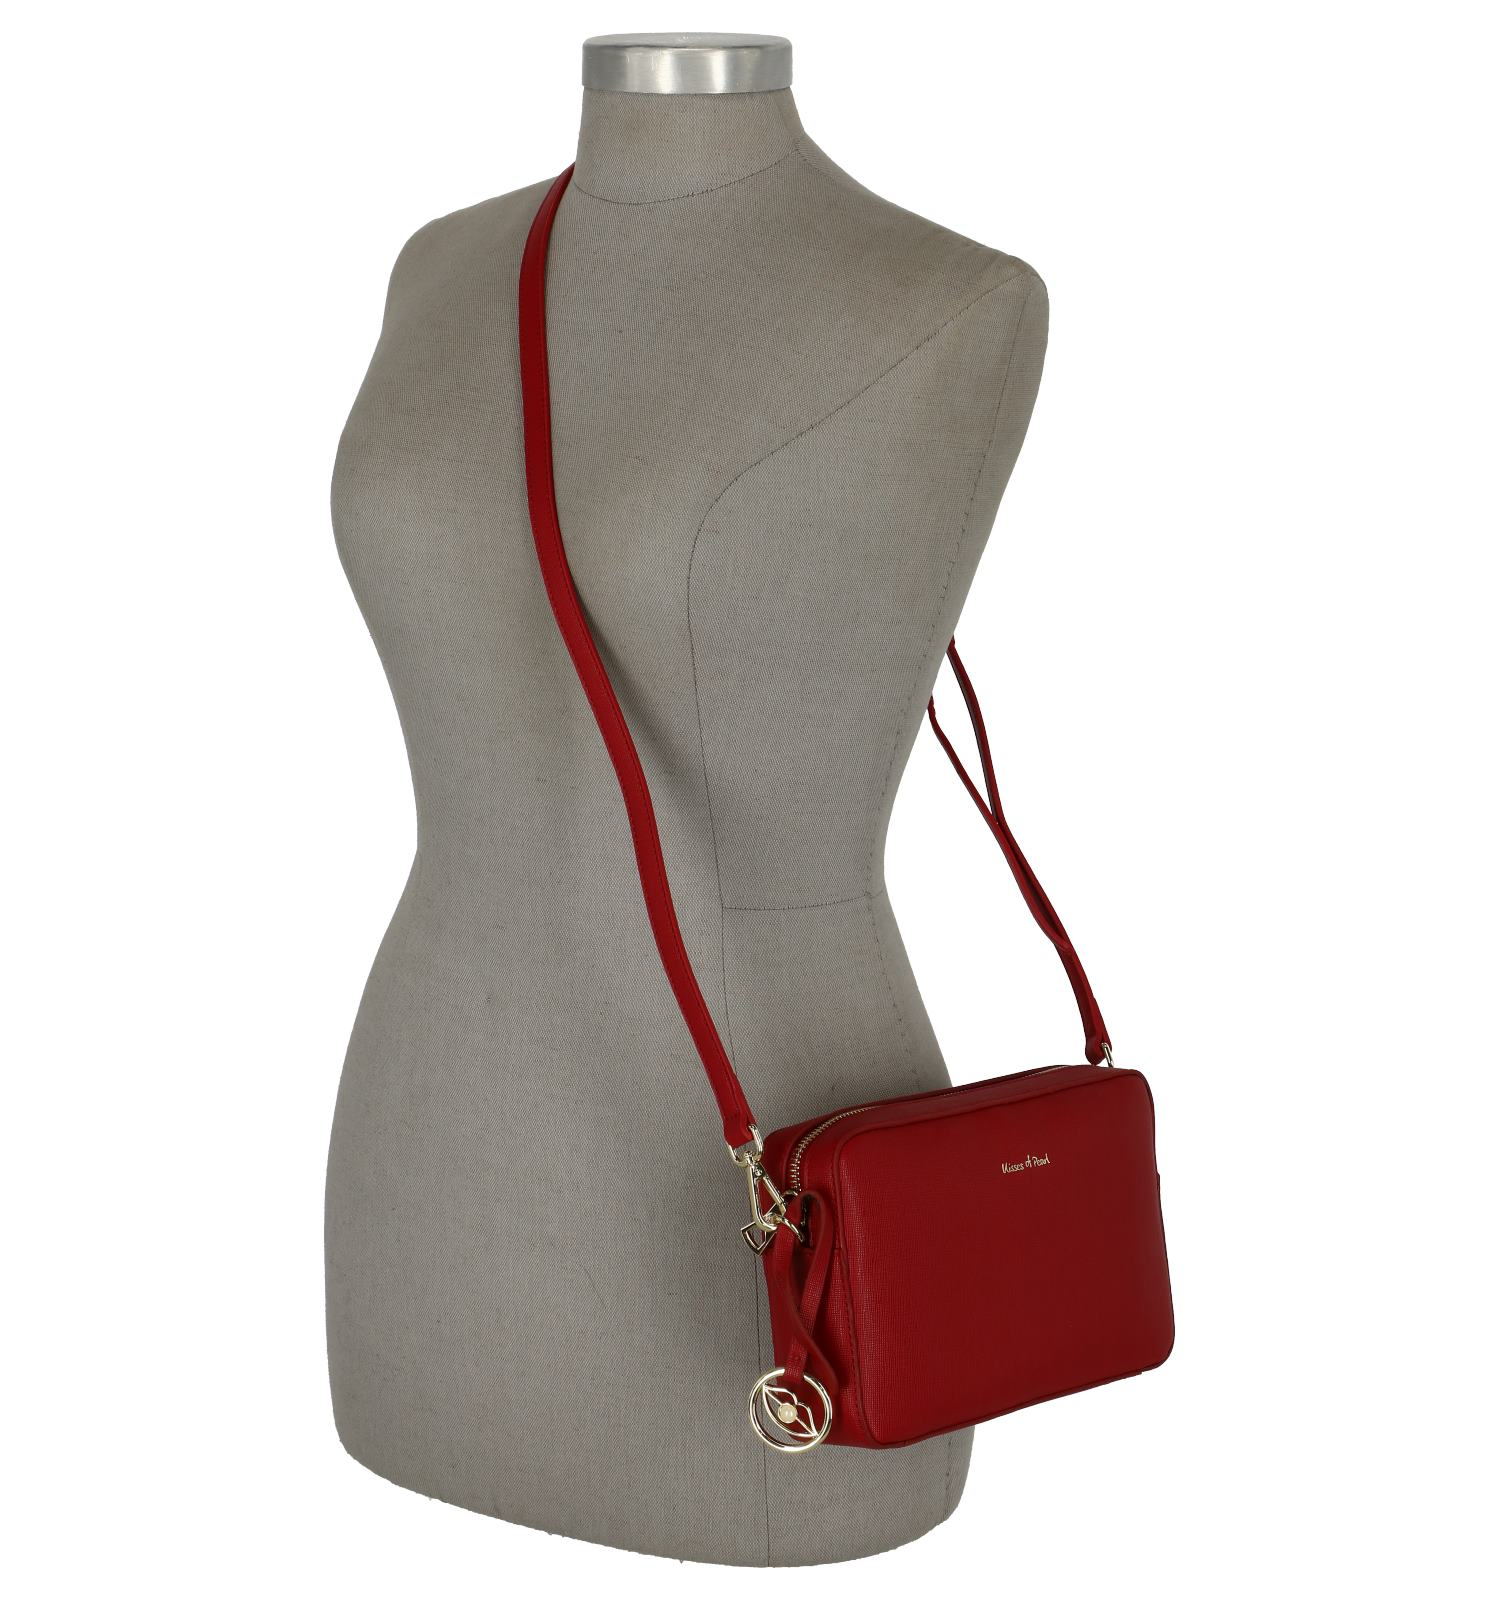 Of Rode Crossbody Pearl Veronique Kisses O8Pn0wXNk